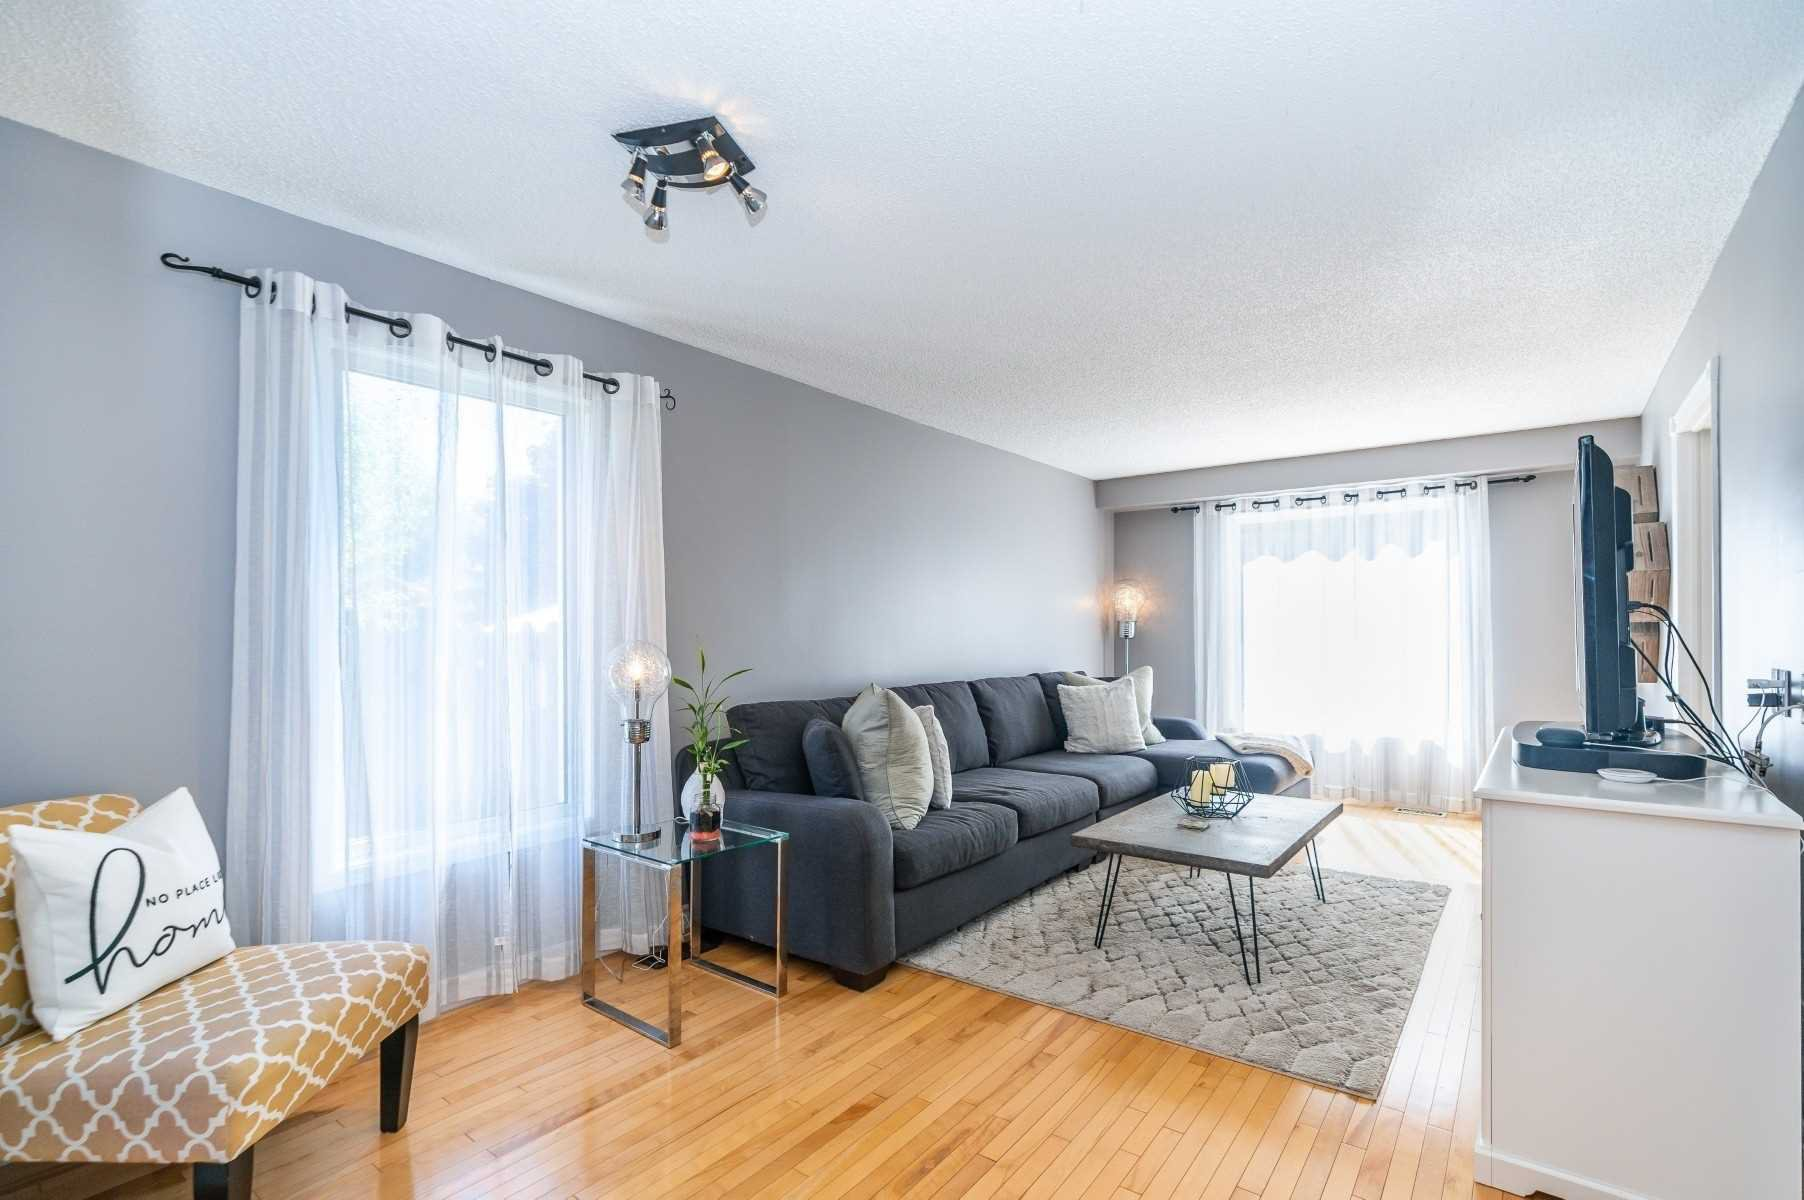 Photo 5: Photos: 1153 Snowberry Court in Oshawa: Pinecrest House (2-Storey) for sale : MLS®# E4794796